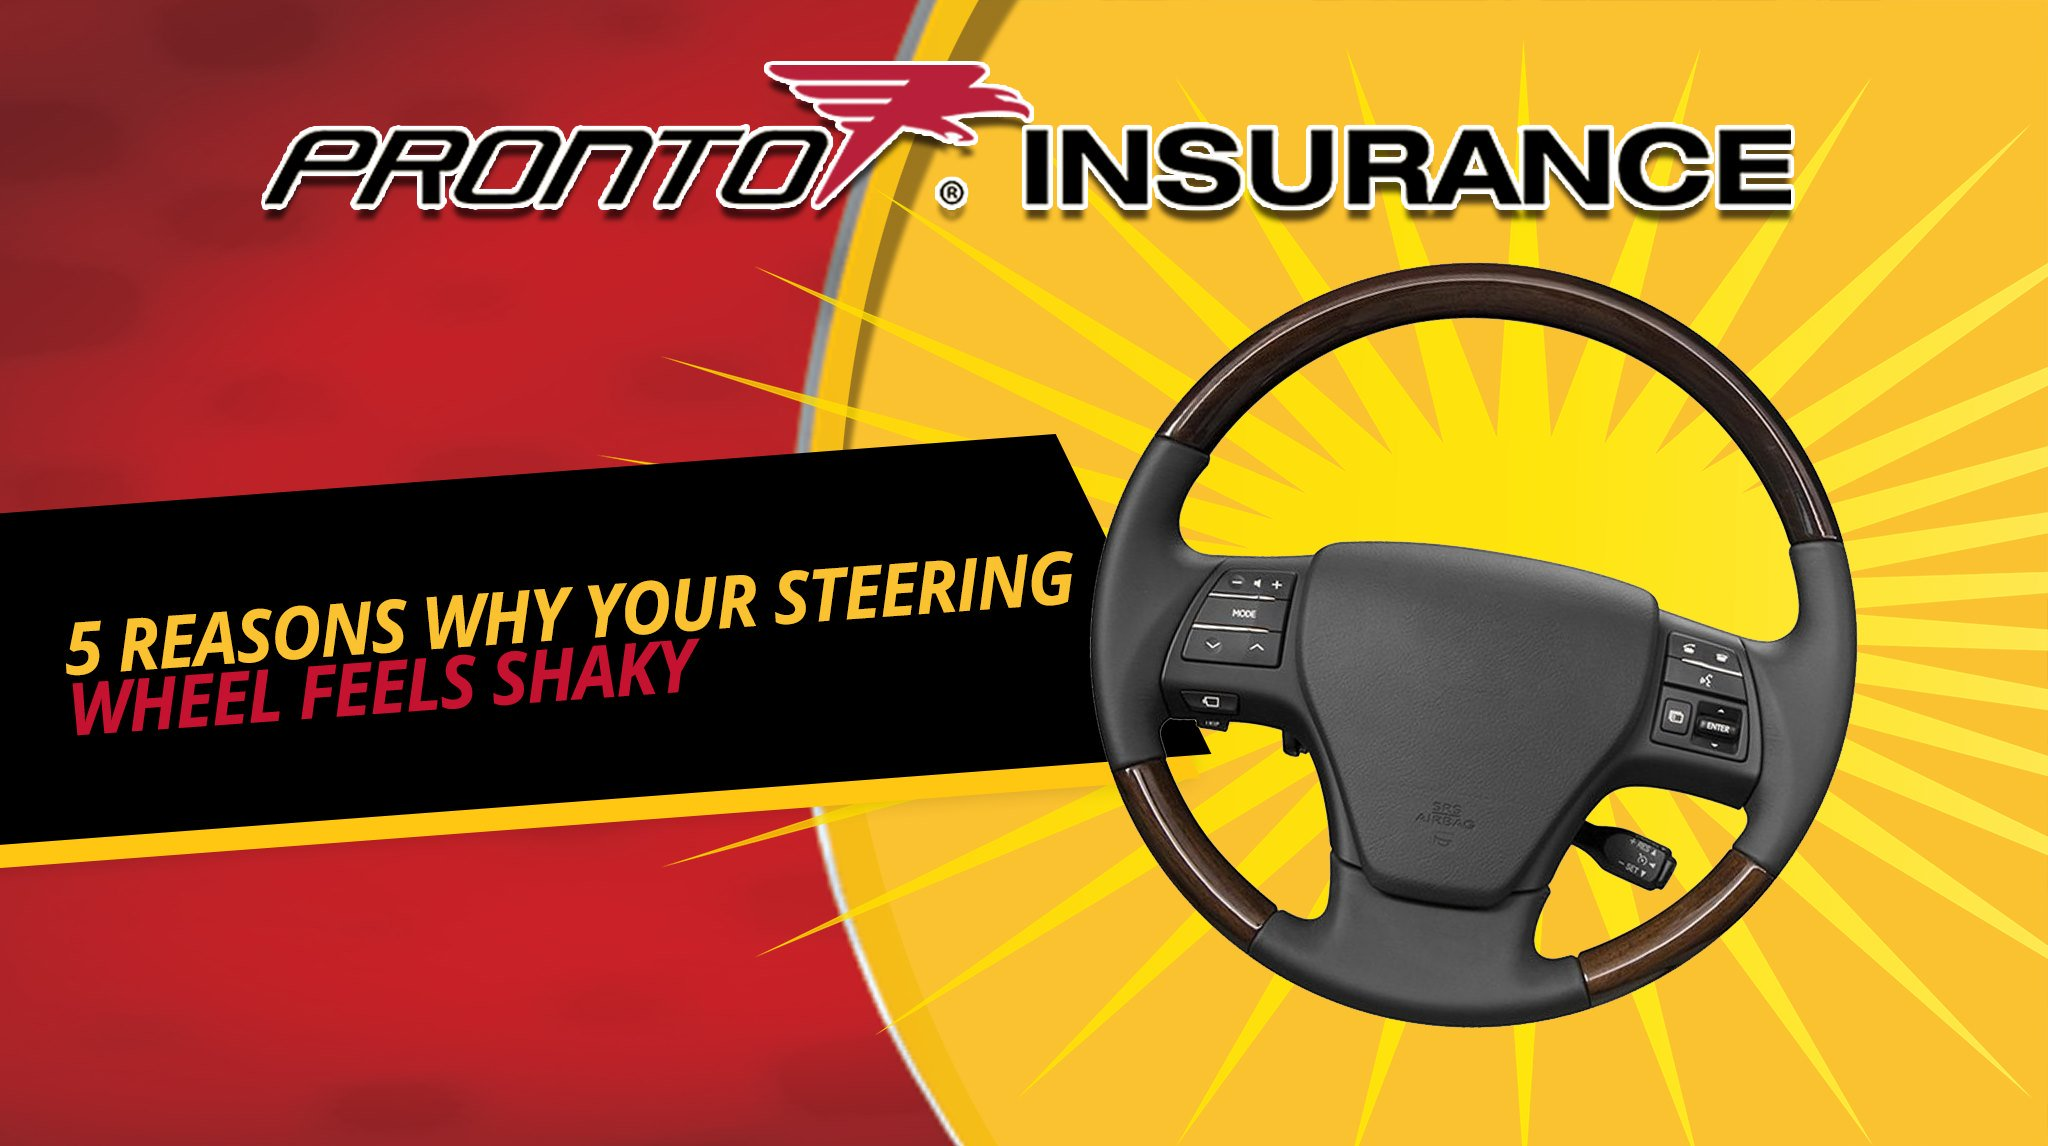 5 Reasons Why Your Steering Wheel Feels Shaky